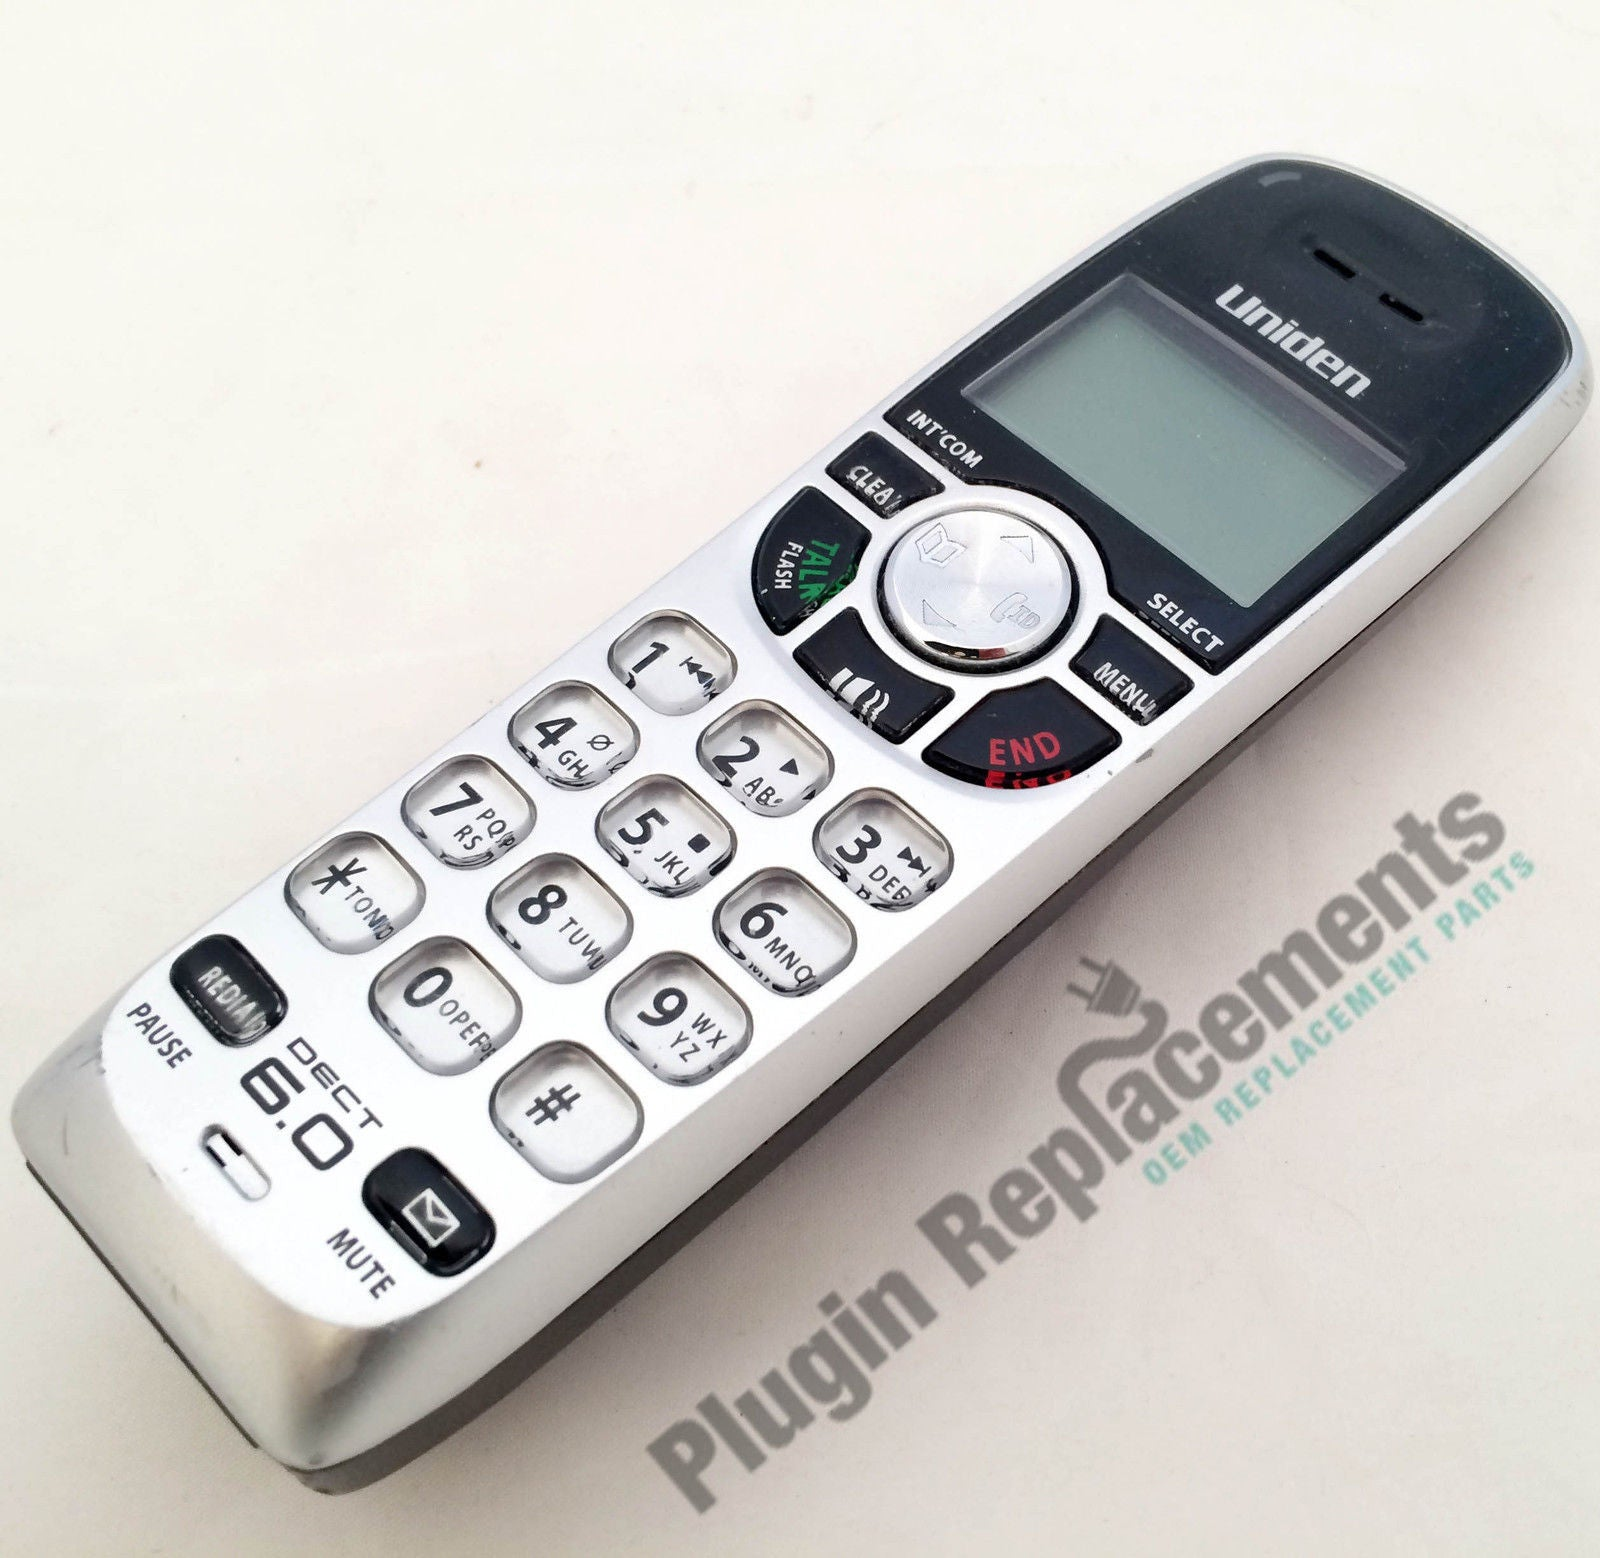 uniden dect1580 2 dcx150 extra handset only for dect1560 1580 series rh pluginreplacements com Uniden Model Tr620-2 Manual Uniden Model Tr620-2 Manual